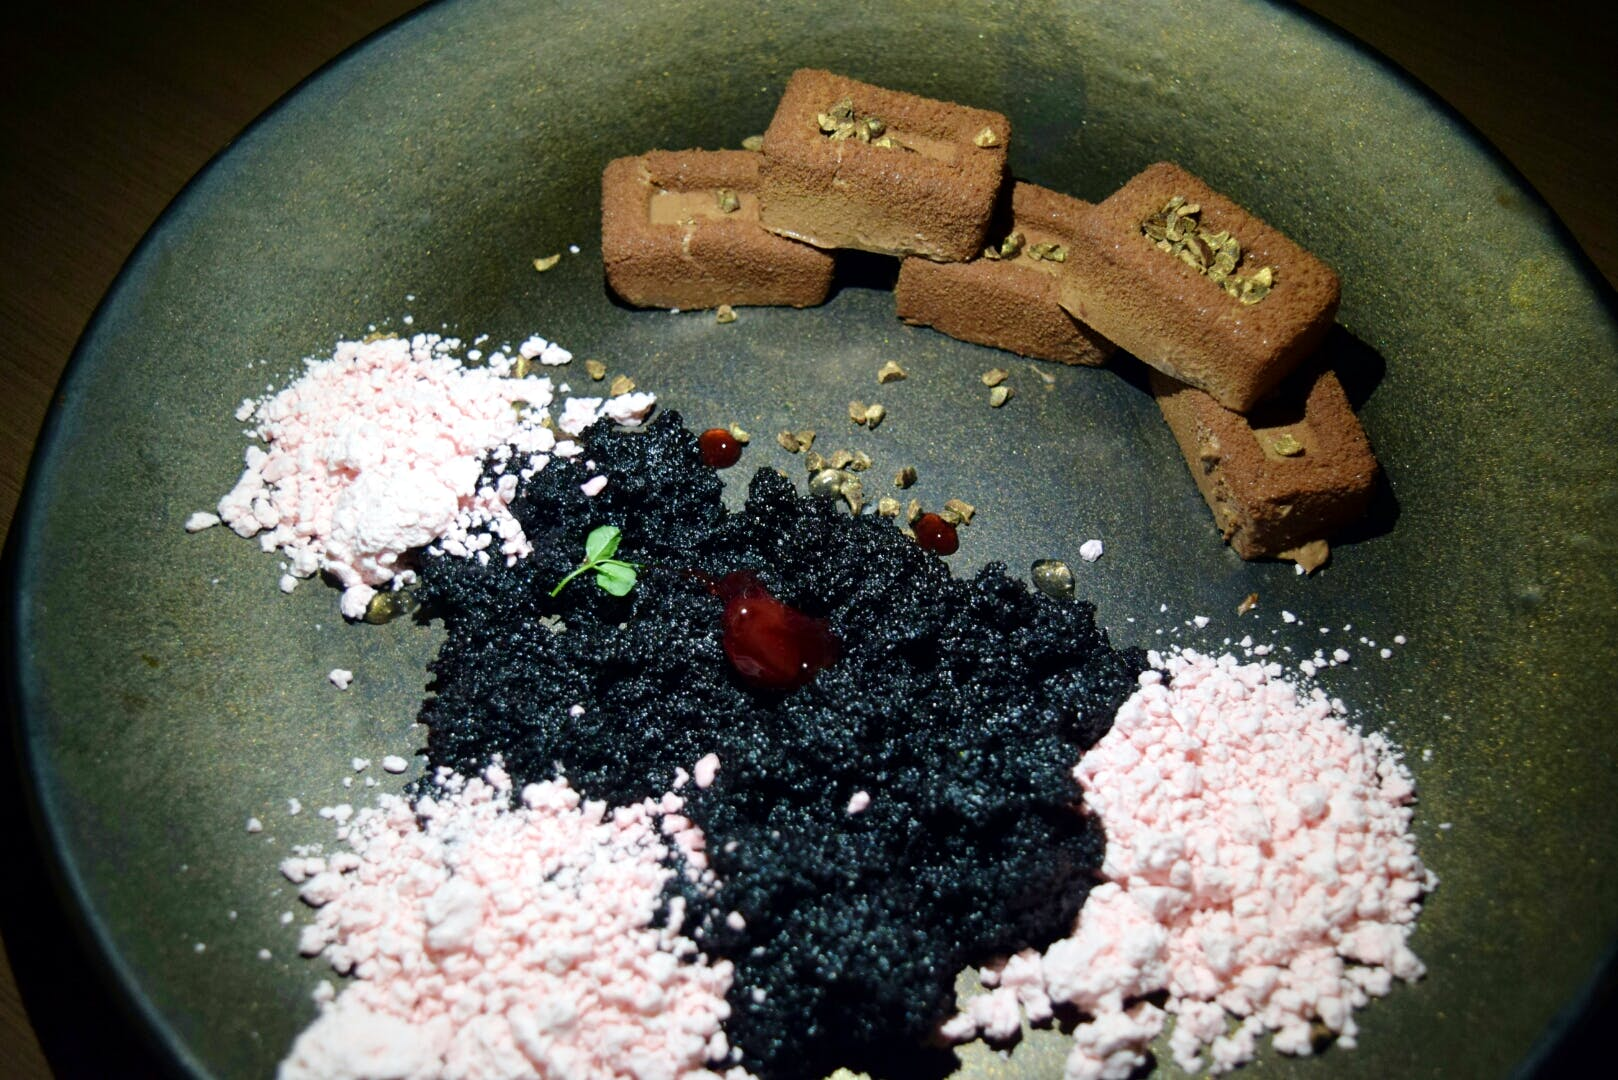 Indulge In This Deconstructed Dark Delight At Kode In Lower Parel